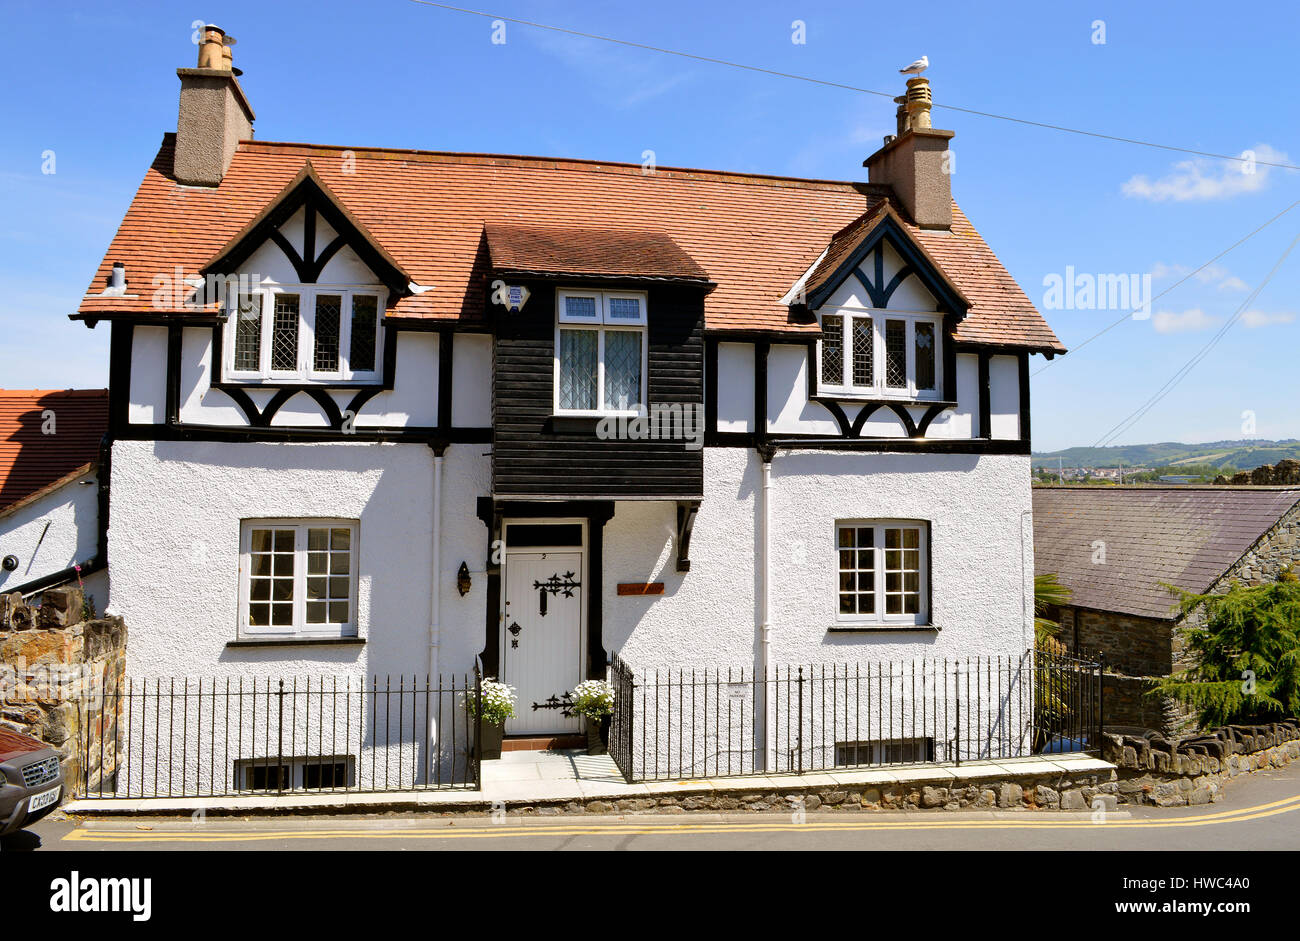 Mock Tudor Style House In North Wales